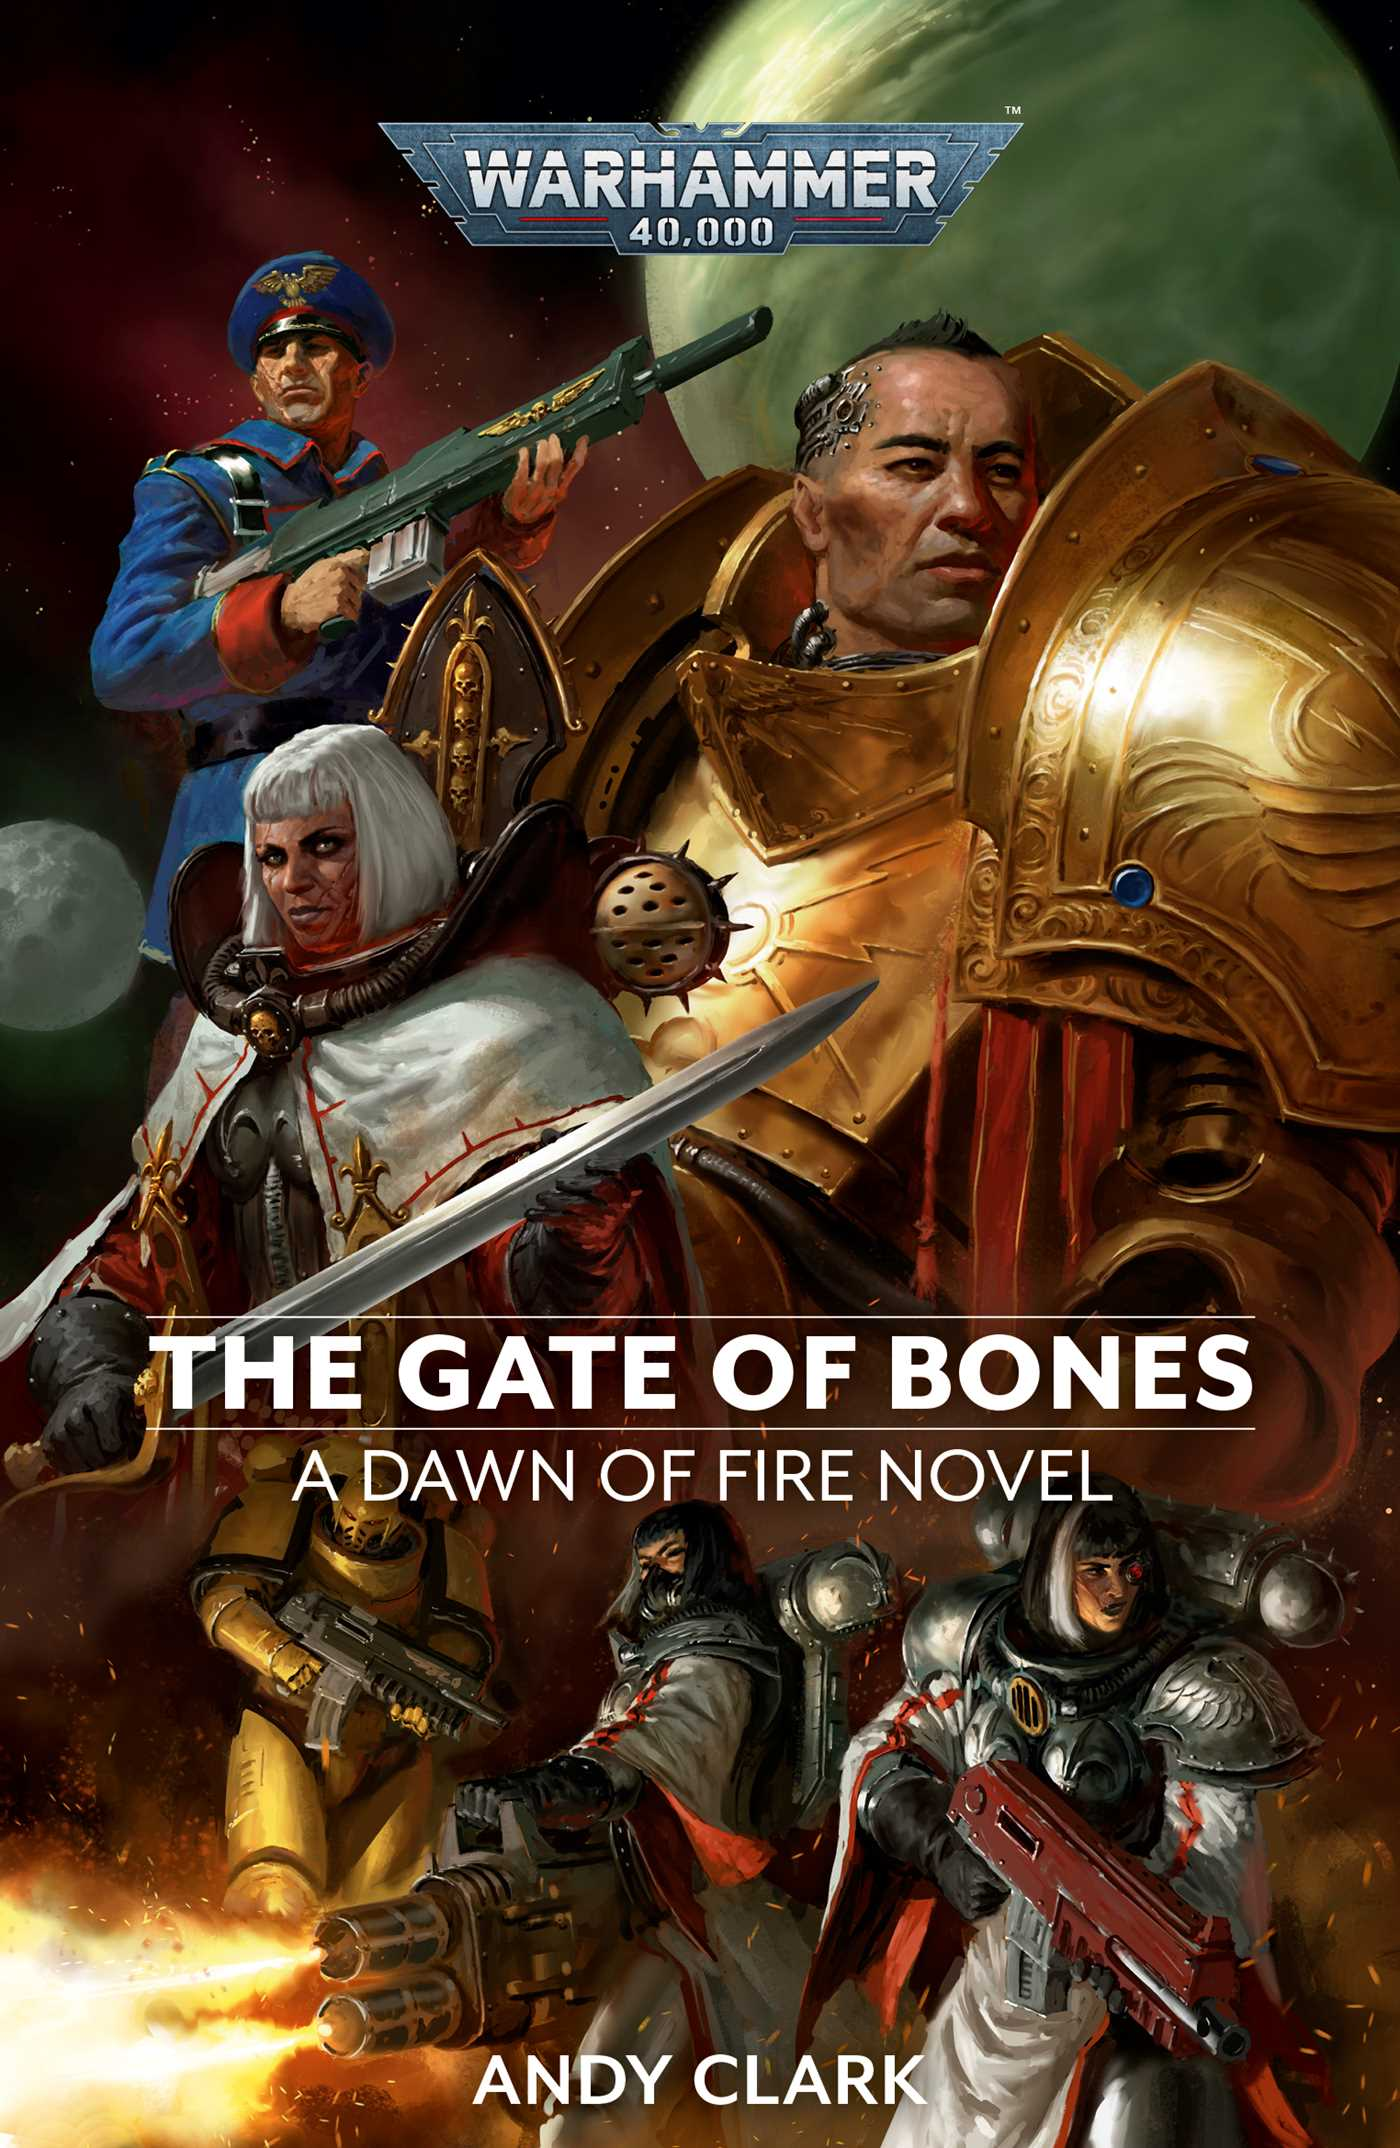 The Gate of Bones (Dawn of Fire #2)